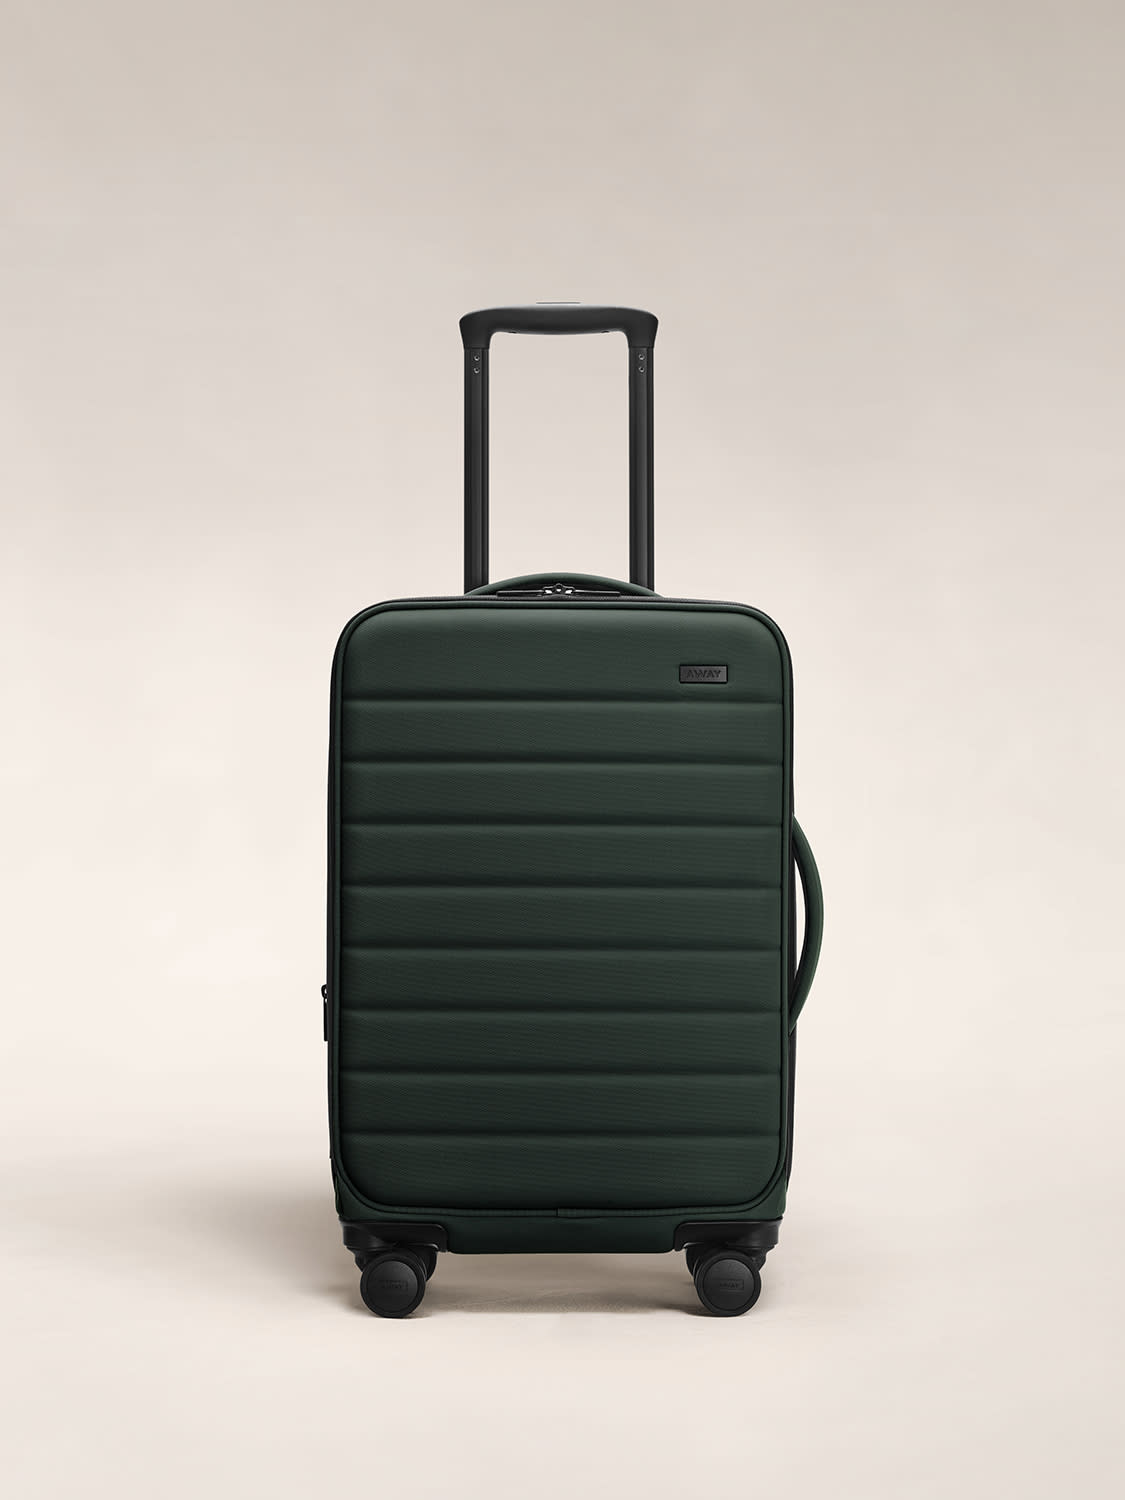 The Expandable Carry-On in Green